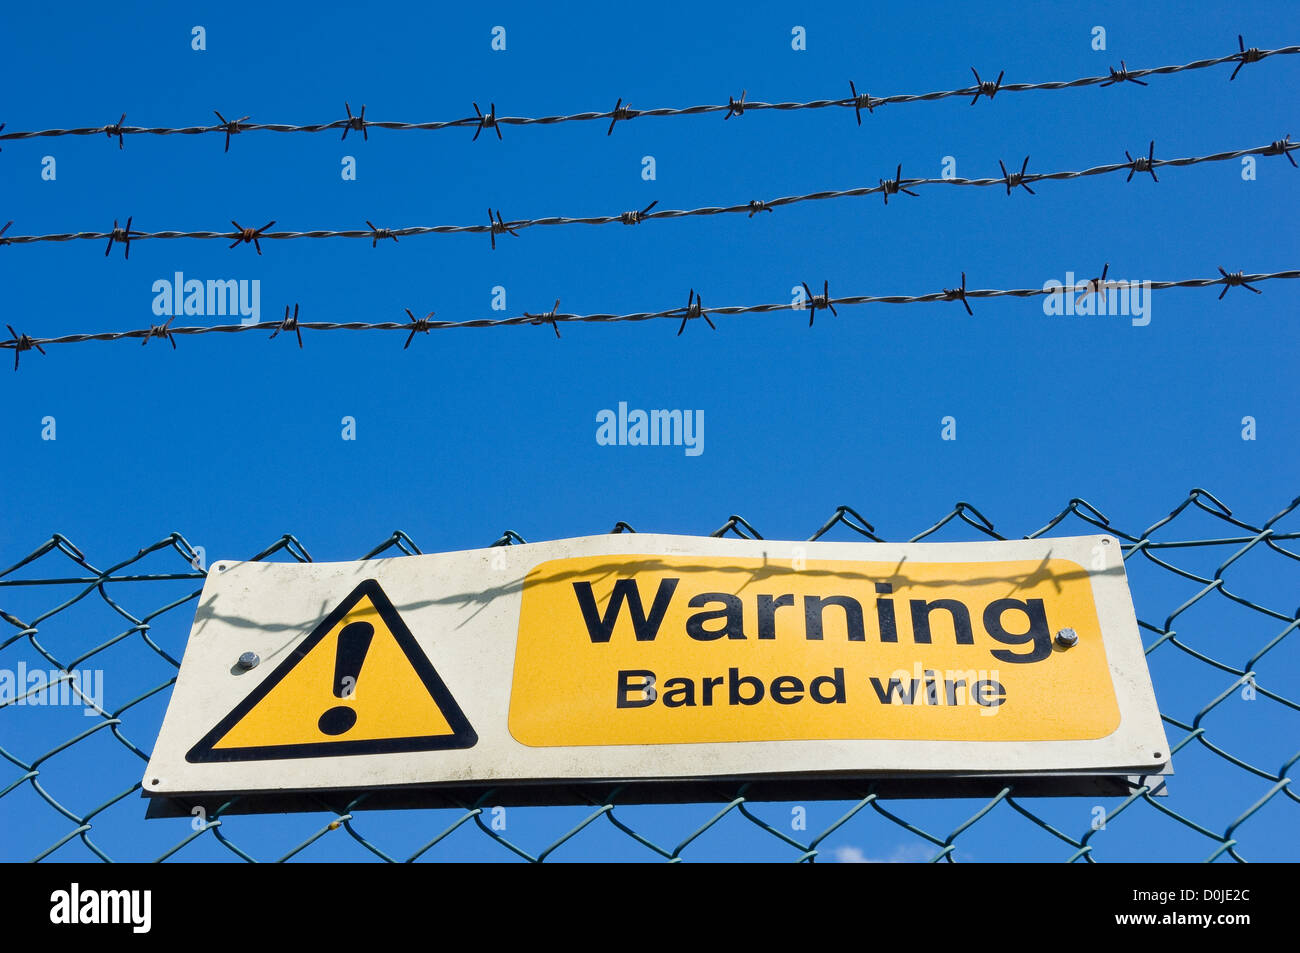 Warning sign on a barbed wire fence against bright blue sky. Stock Photo